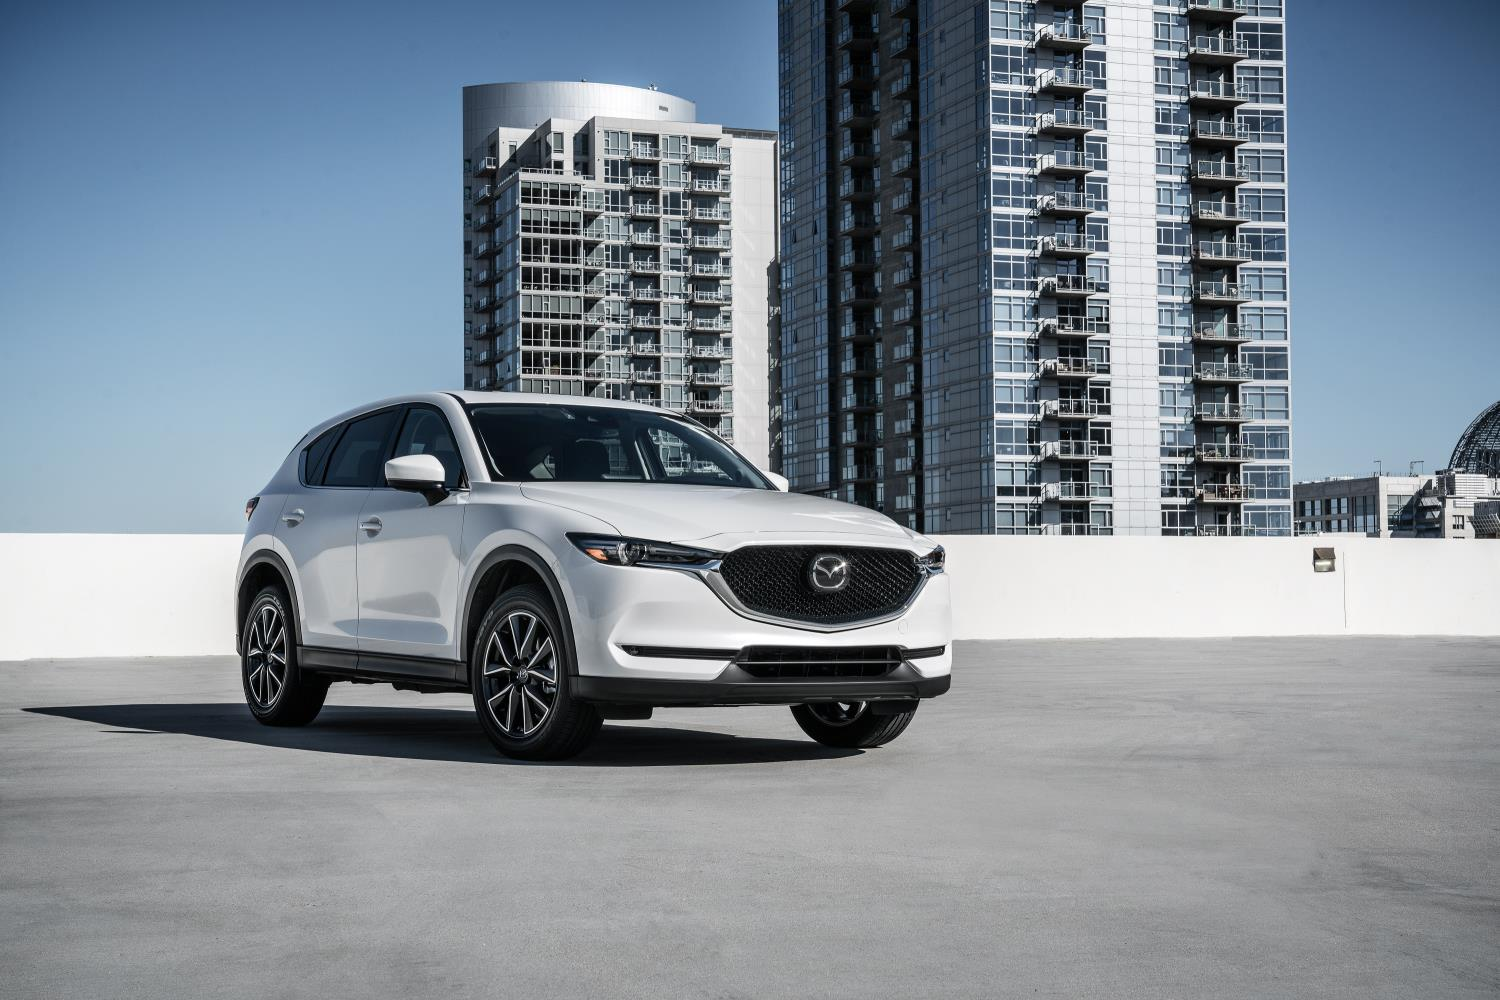 2017 mazda cx 5 price announced for u s market 24 045 autoevolution. Black Bedroom Furniture Sets. Home Design Ideas